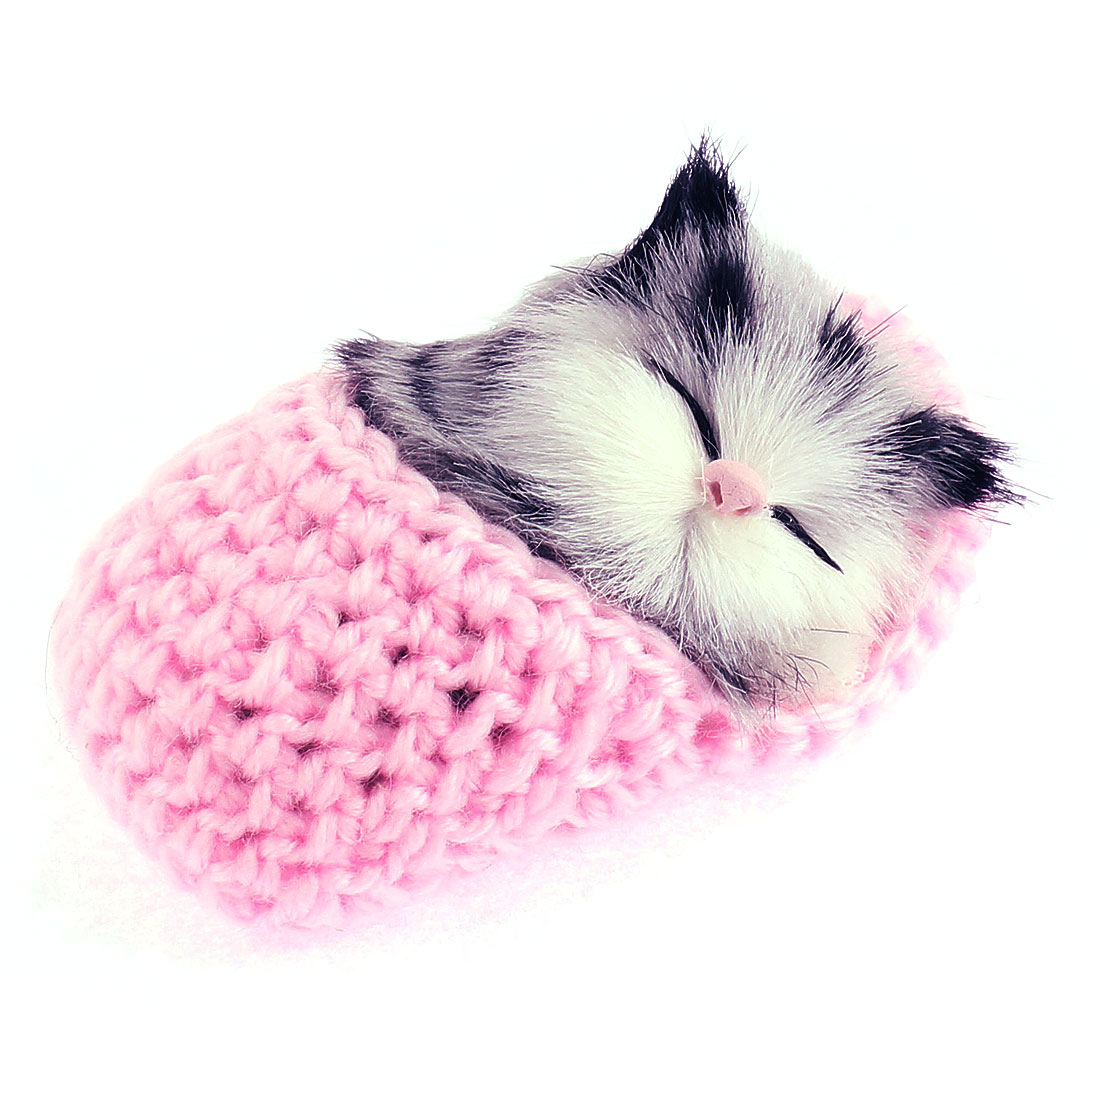 Home Decor Simulation Animal Sound Napping Sleeping Cat in Sock Pink